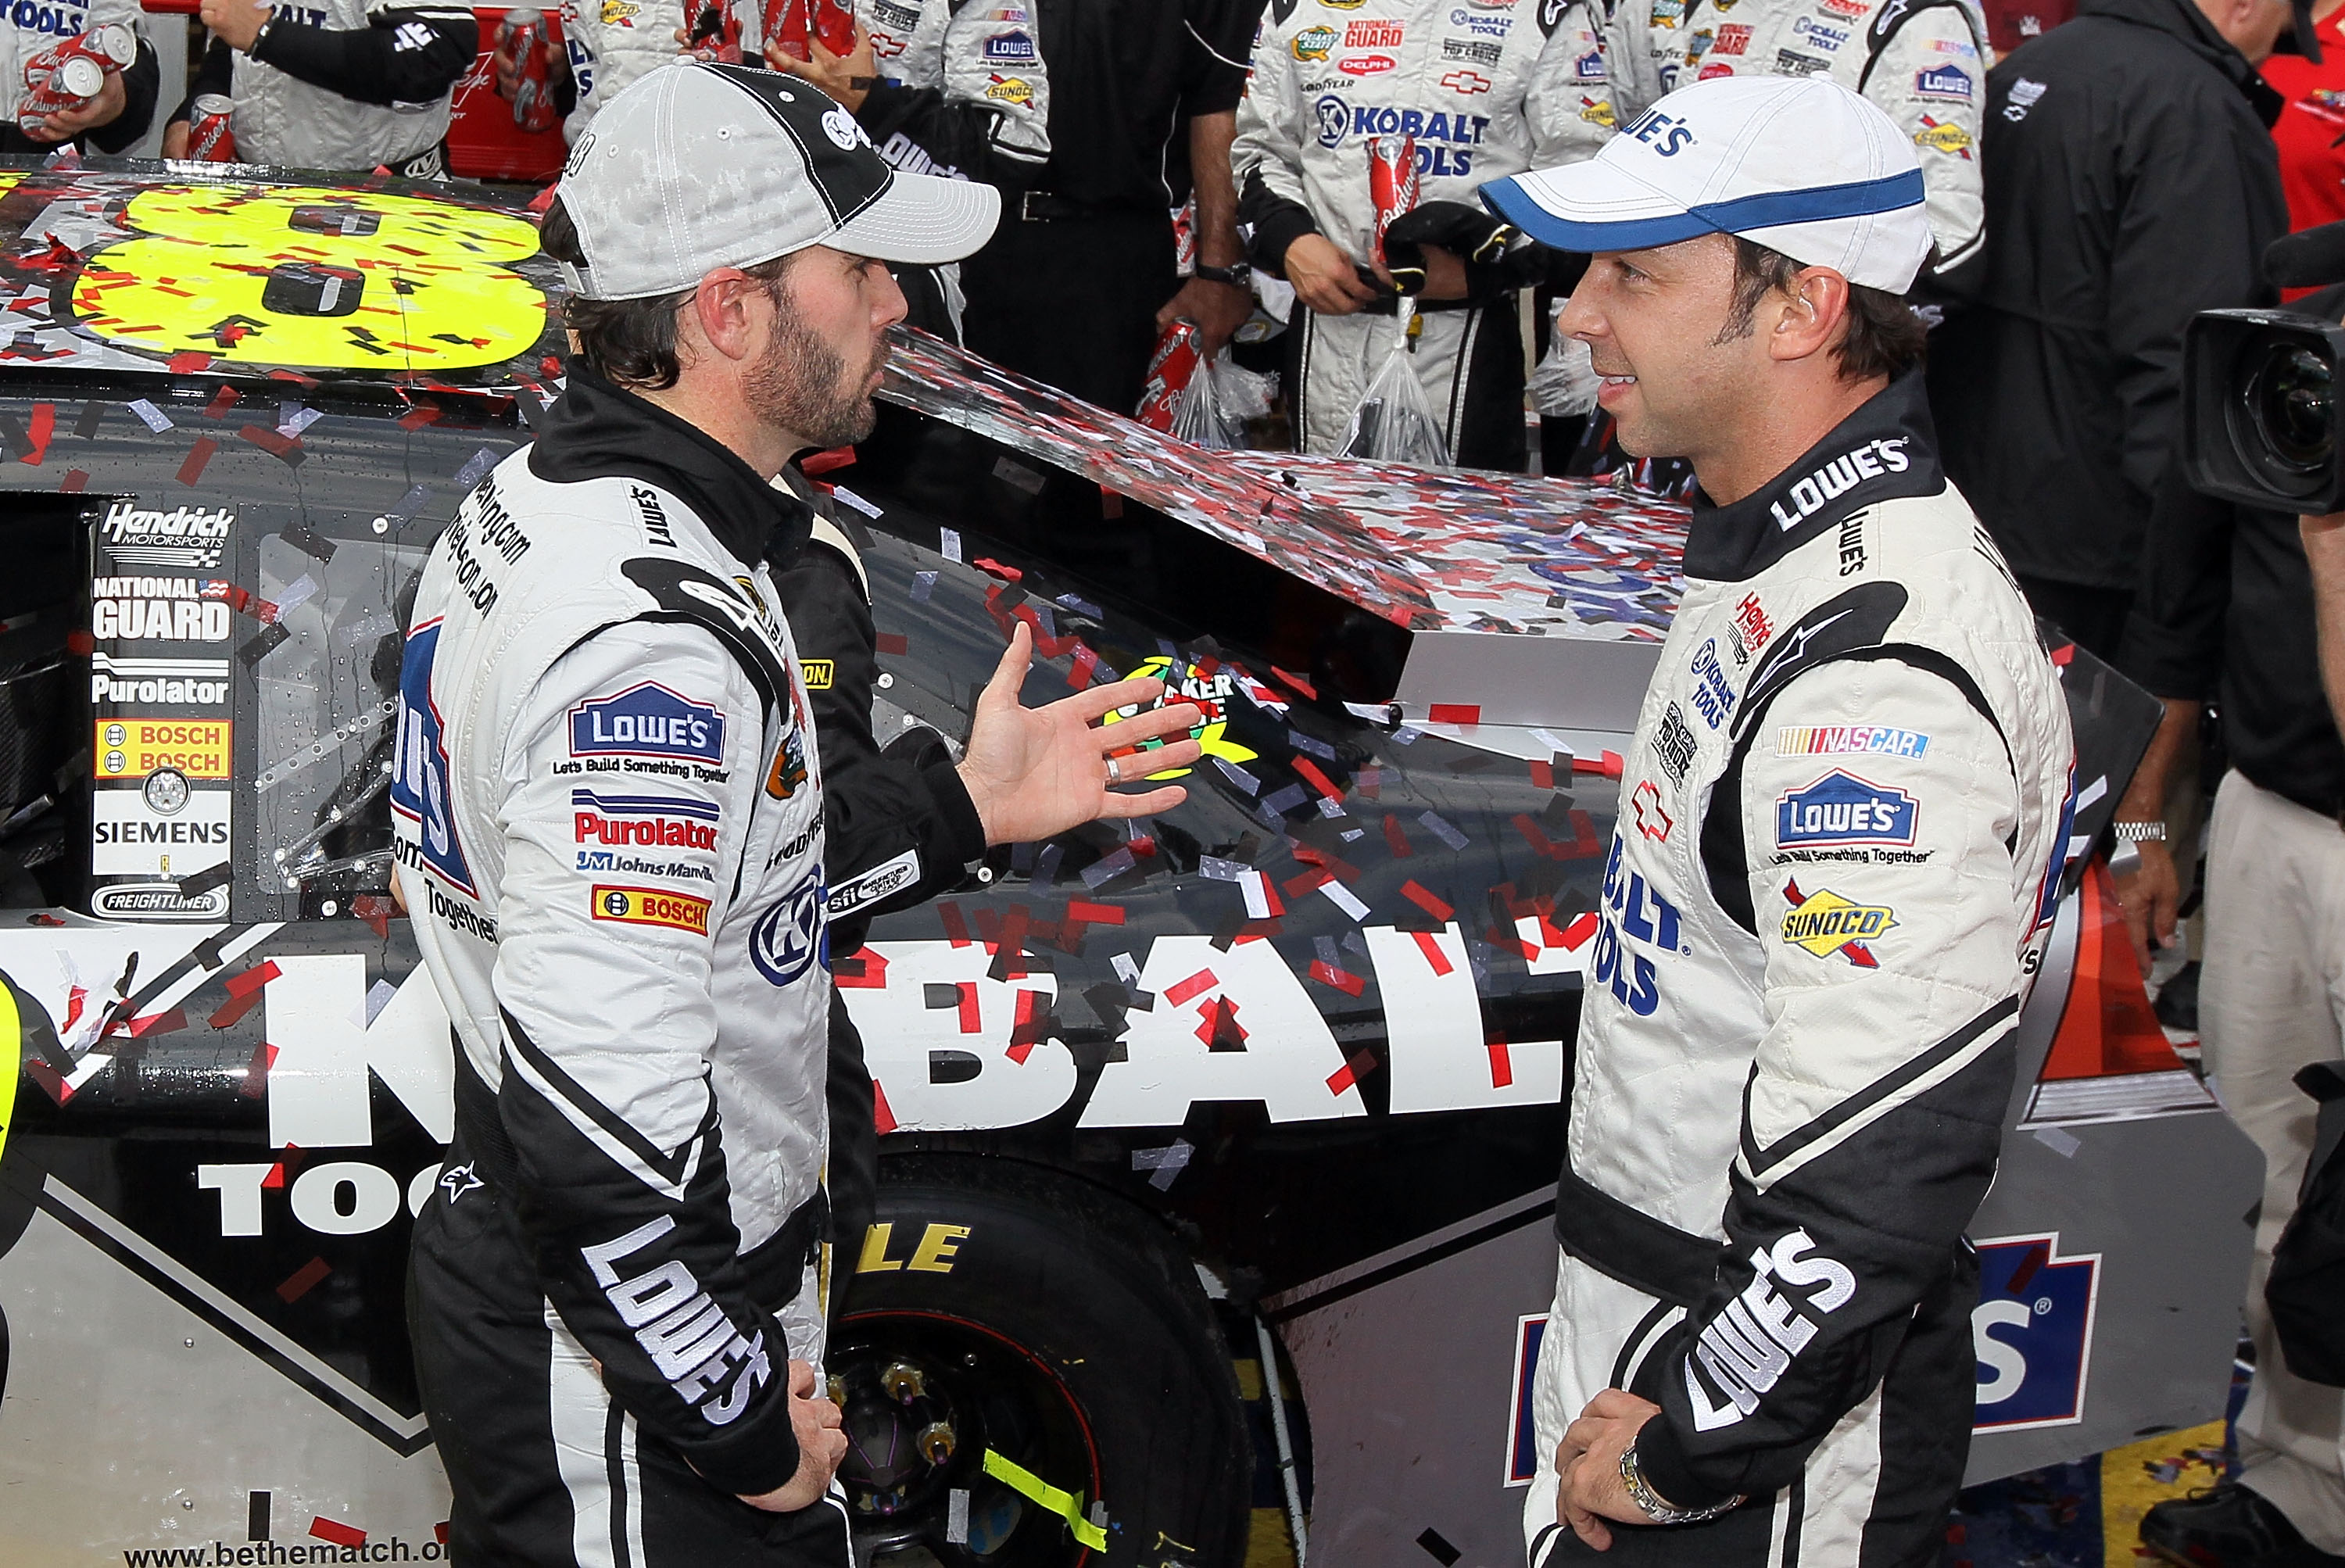 DOVER, DE - SEPTEMBER 26:  Jimmie Johnson (L), driver of the #48 Lowe's Chevrolet, and crew chief Chad Knaus talk in Victory Lane after winning the NASCAR Sprint Cup Series AAA 400 at Dover International Speedway on September 26, 2010 in Dover, Delaware.